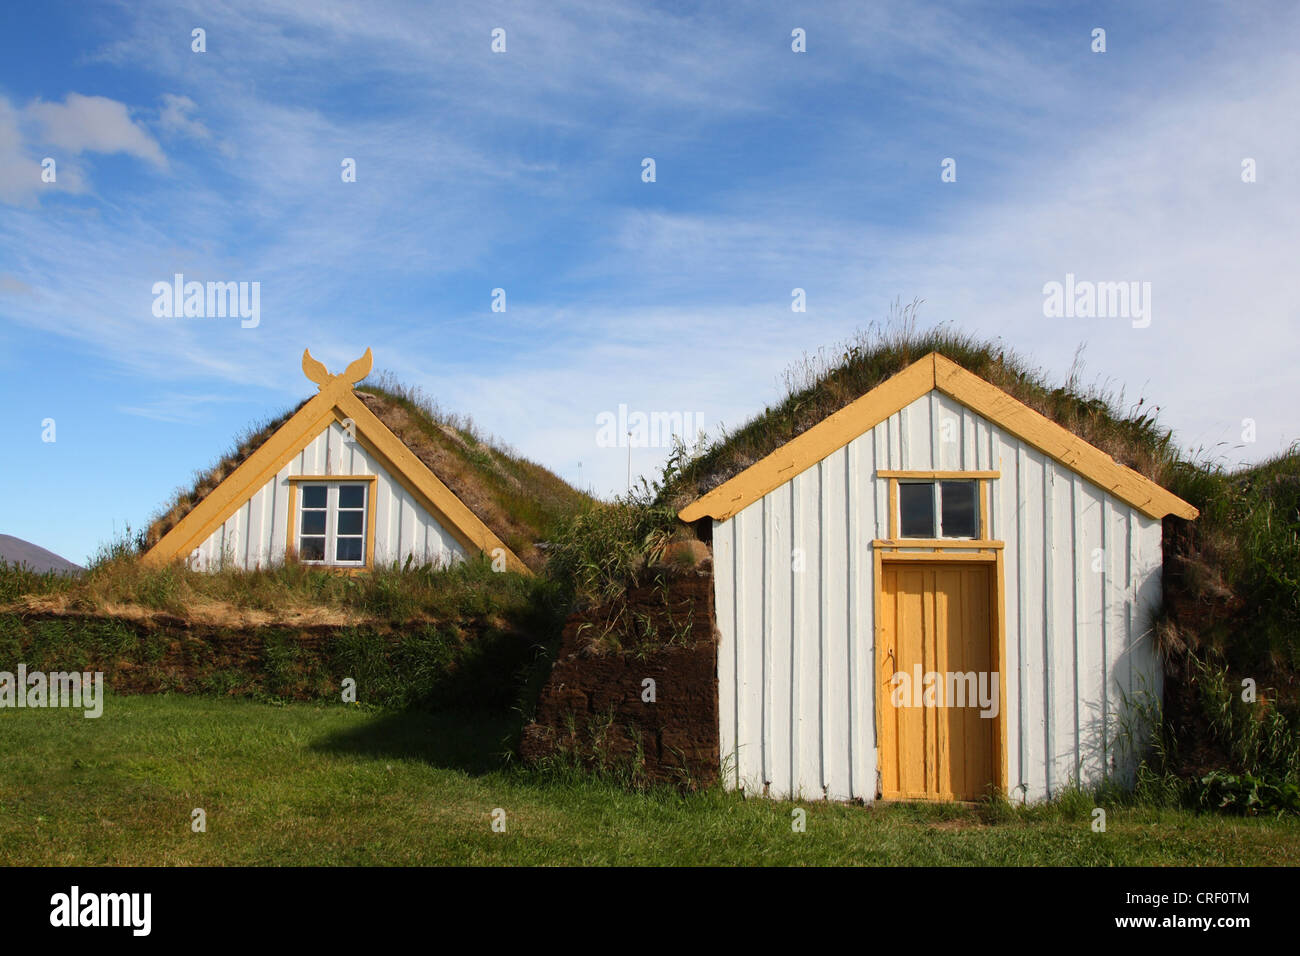 sod houses at Laufas , Iceland - Stock Image